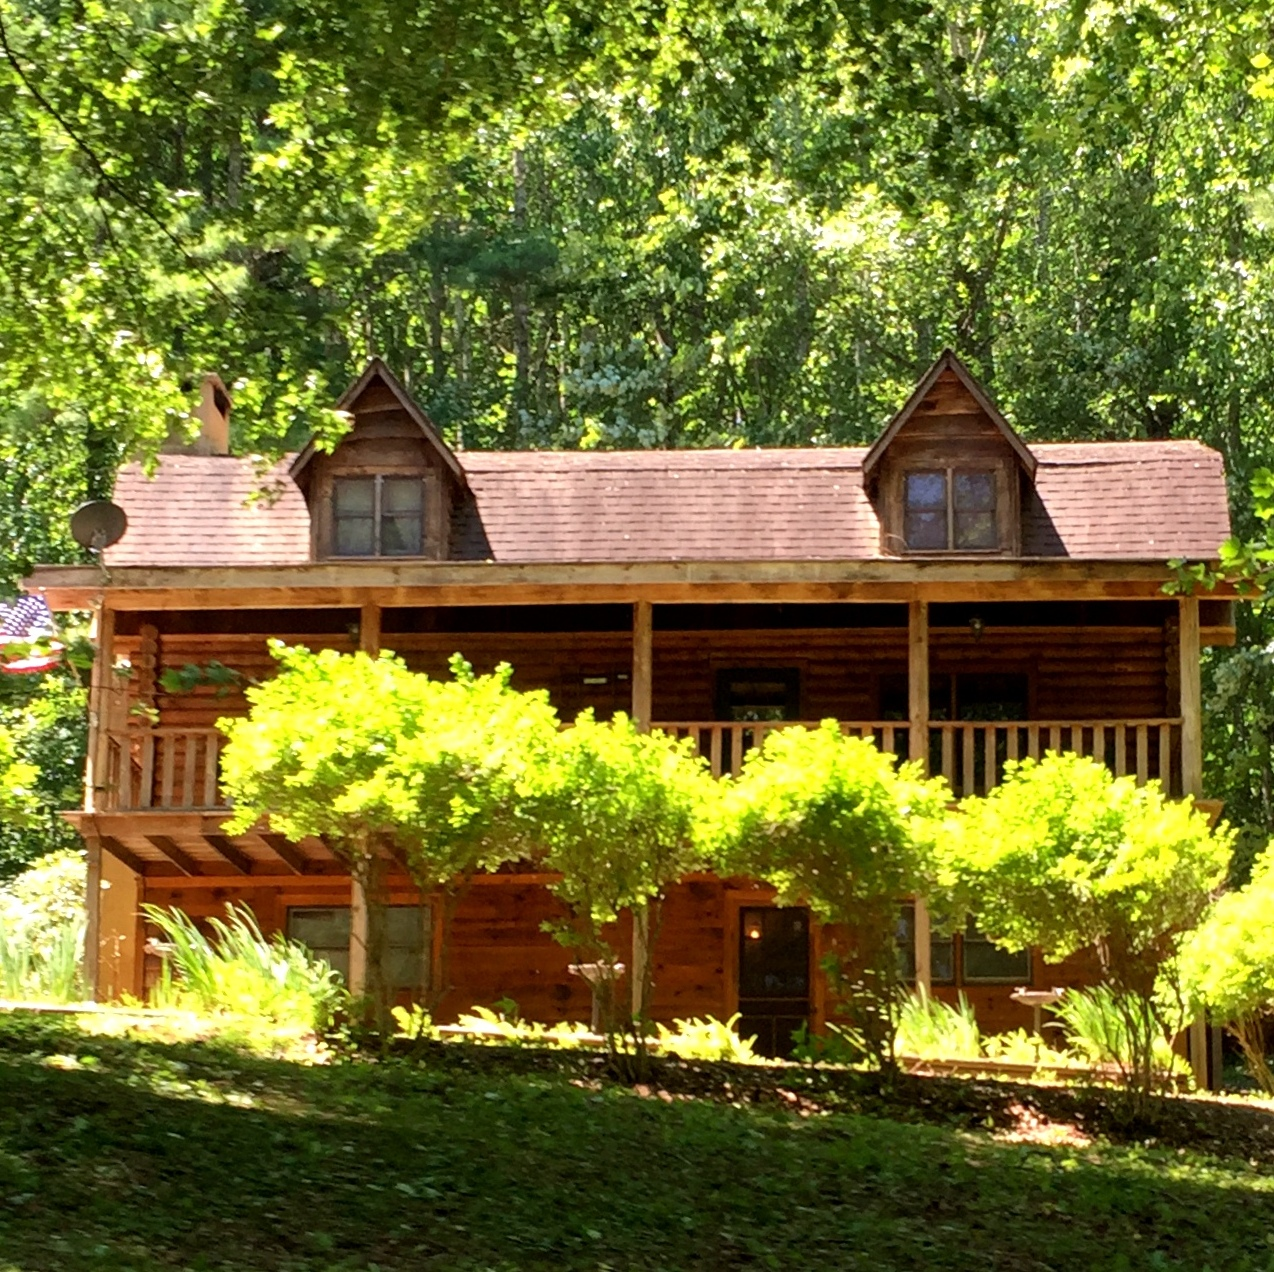 cabin cozy sale remote asheville boone carolina in state north smoky log rentals cabins mountains for cheap parks